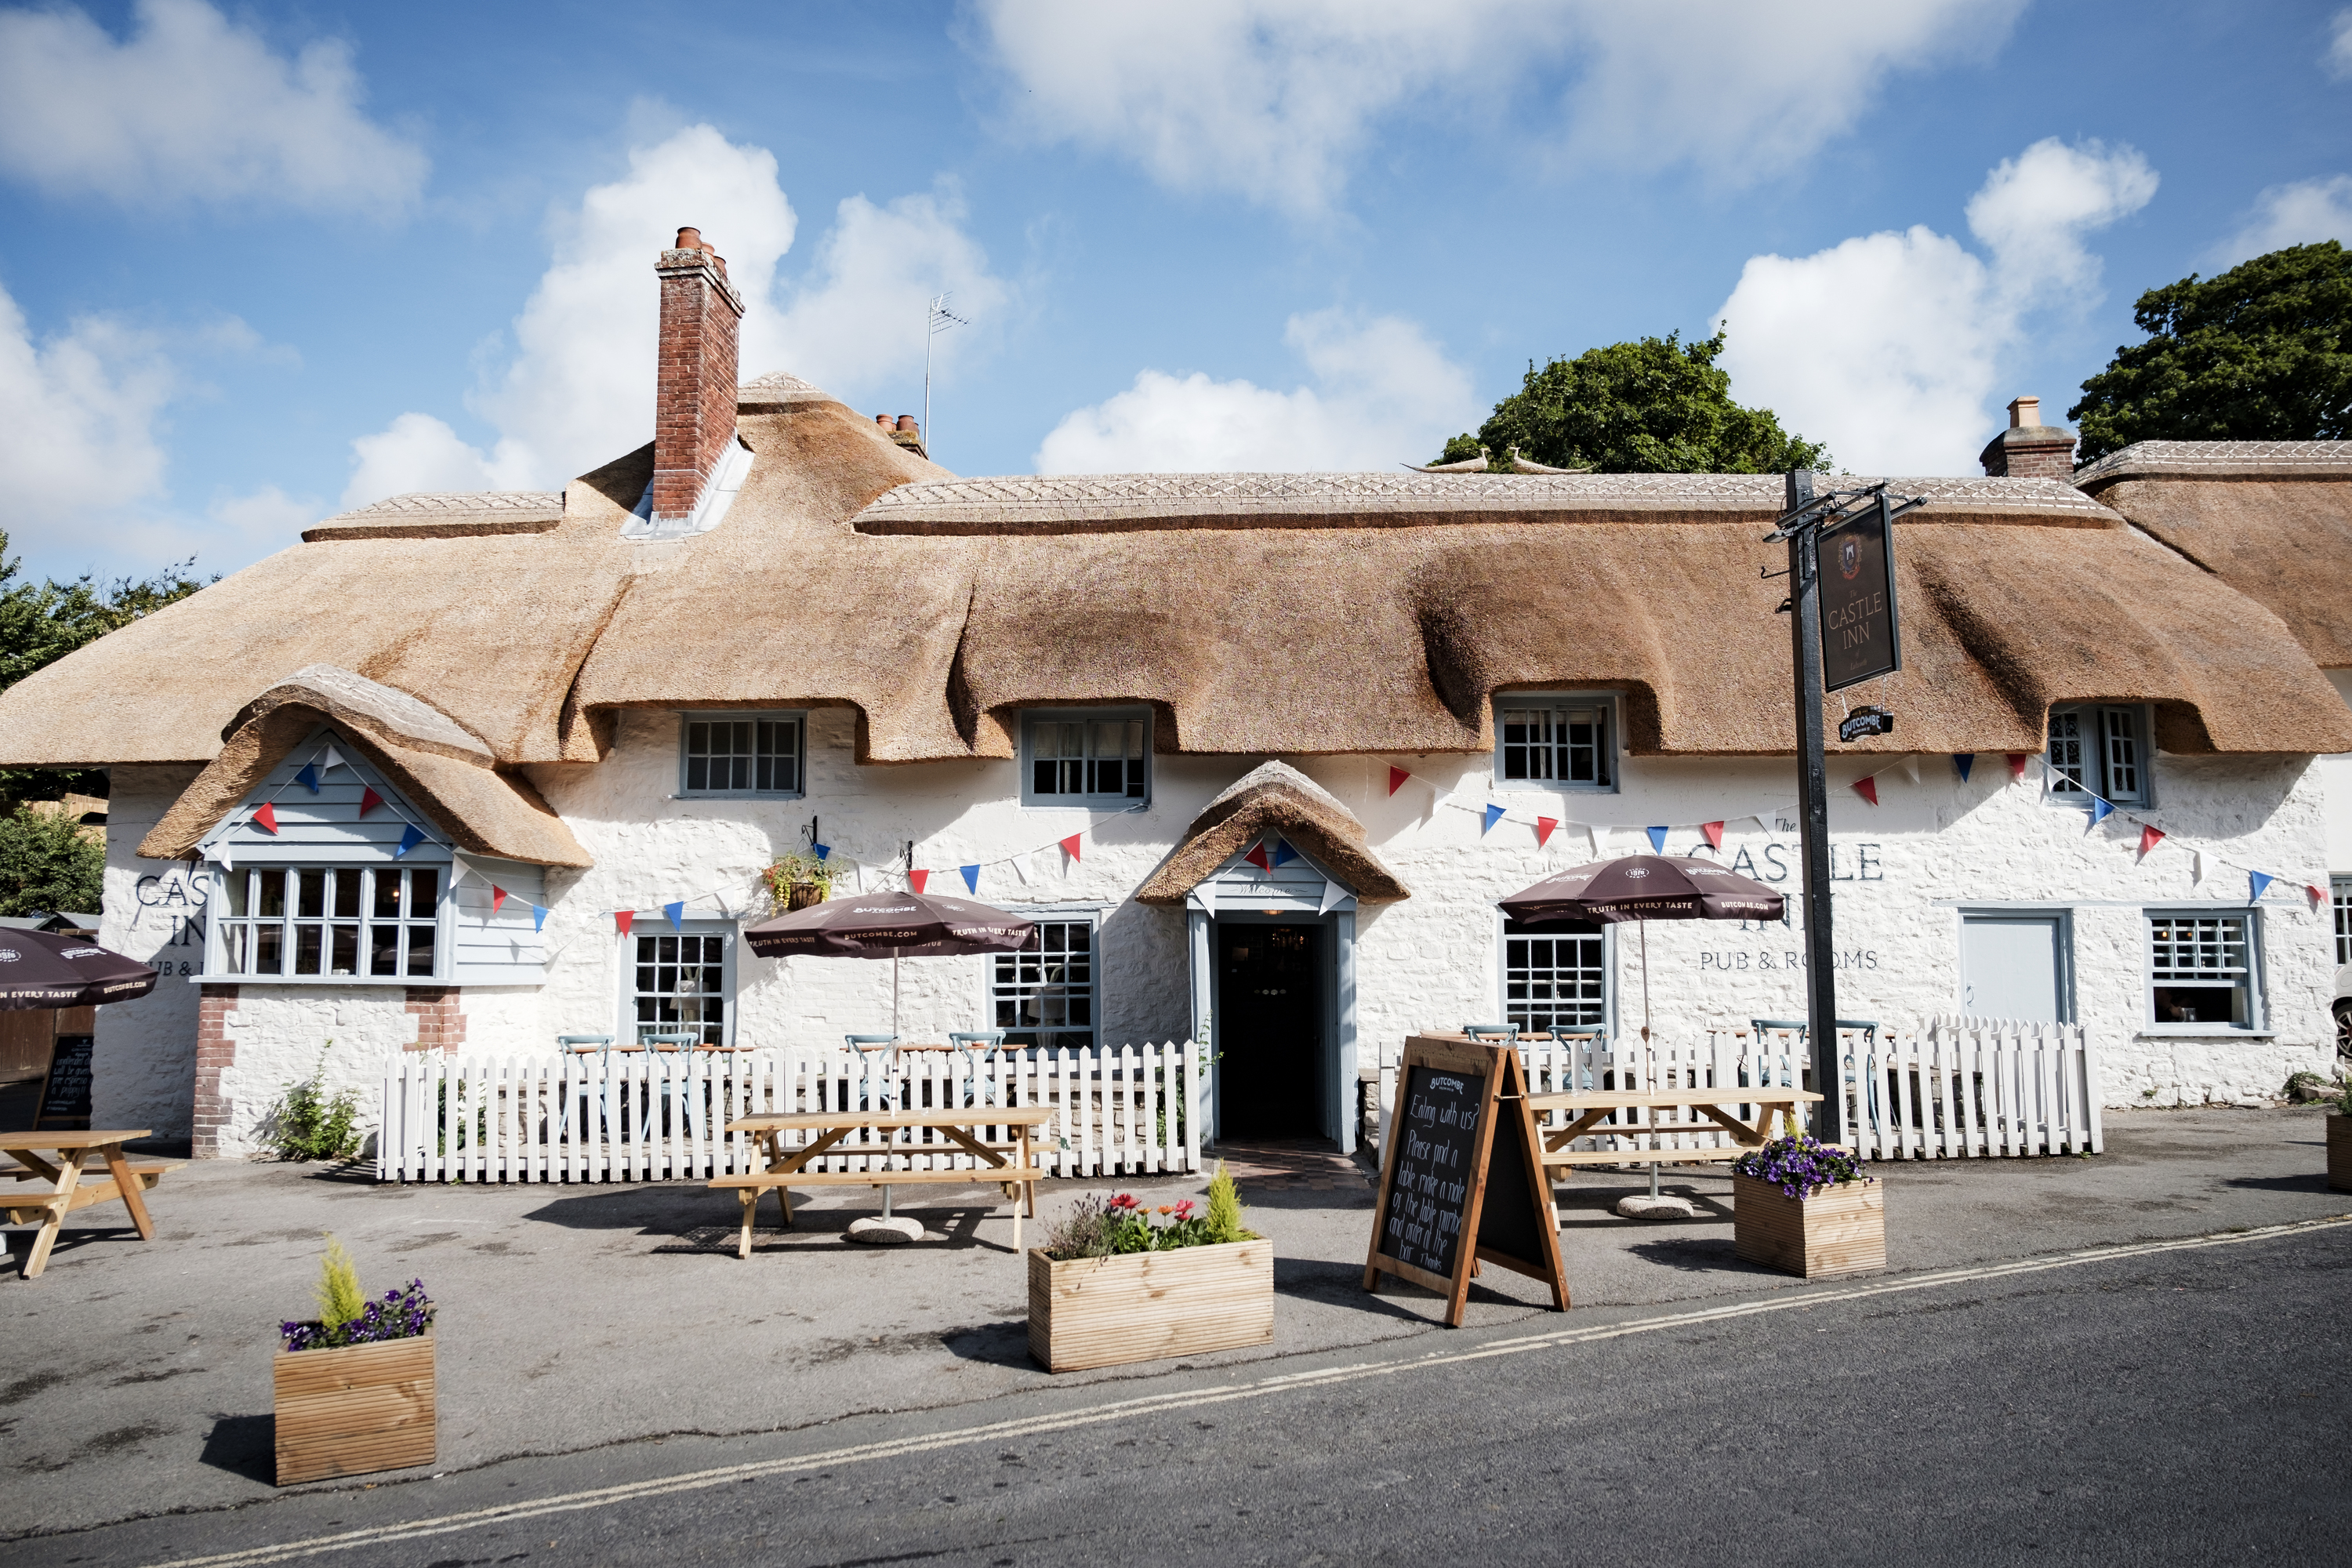 The Castle Inn, Lulworth Cove